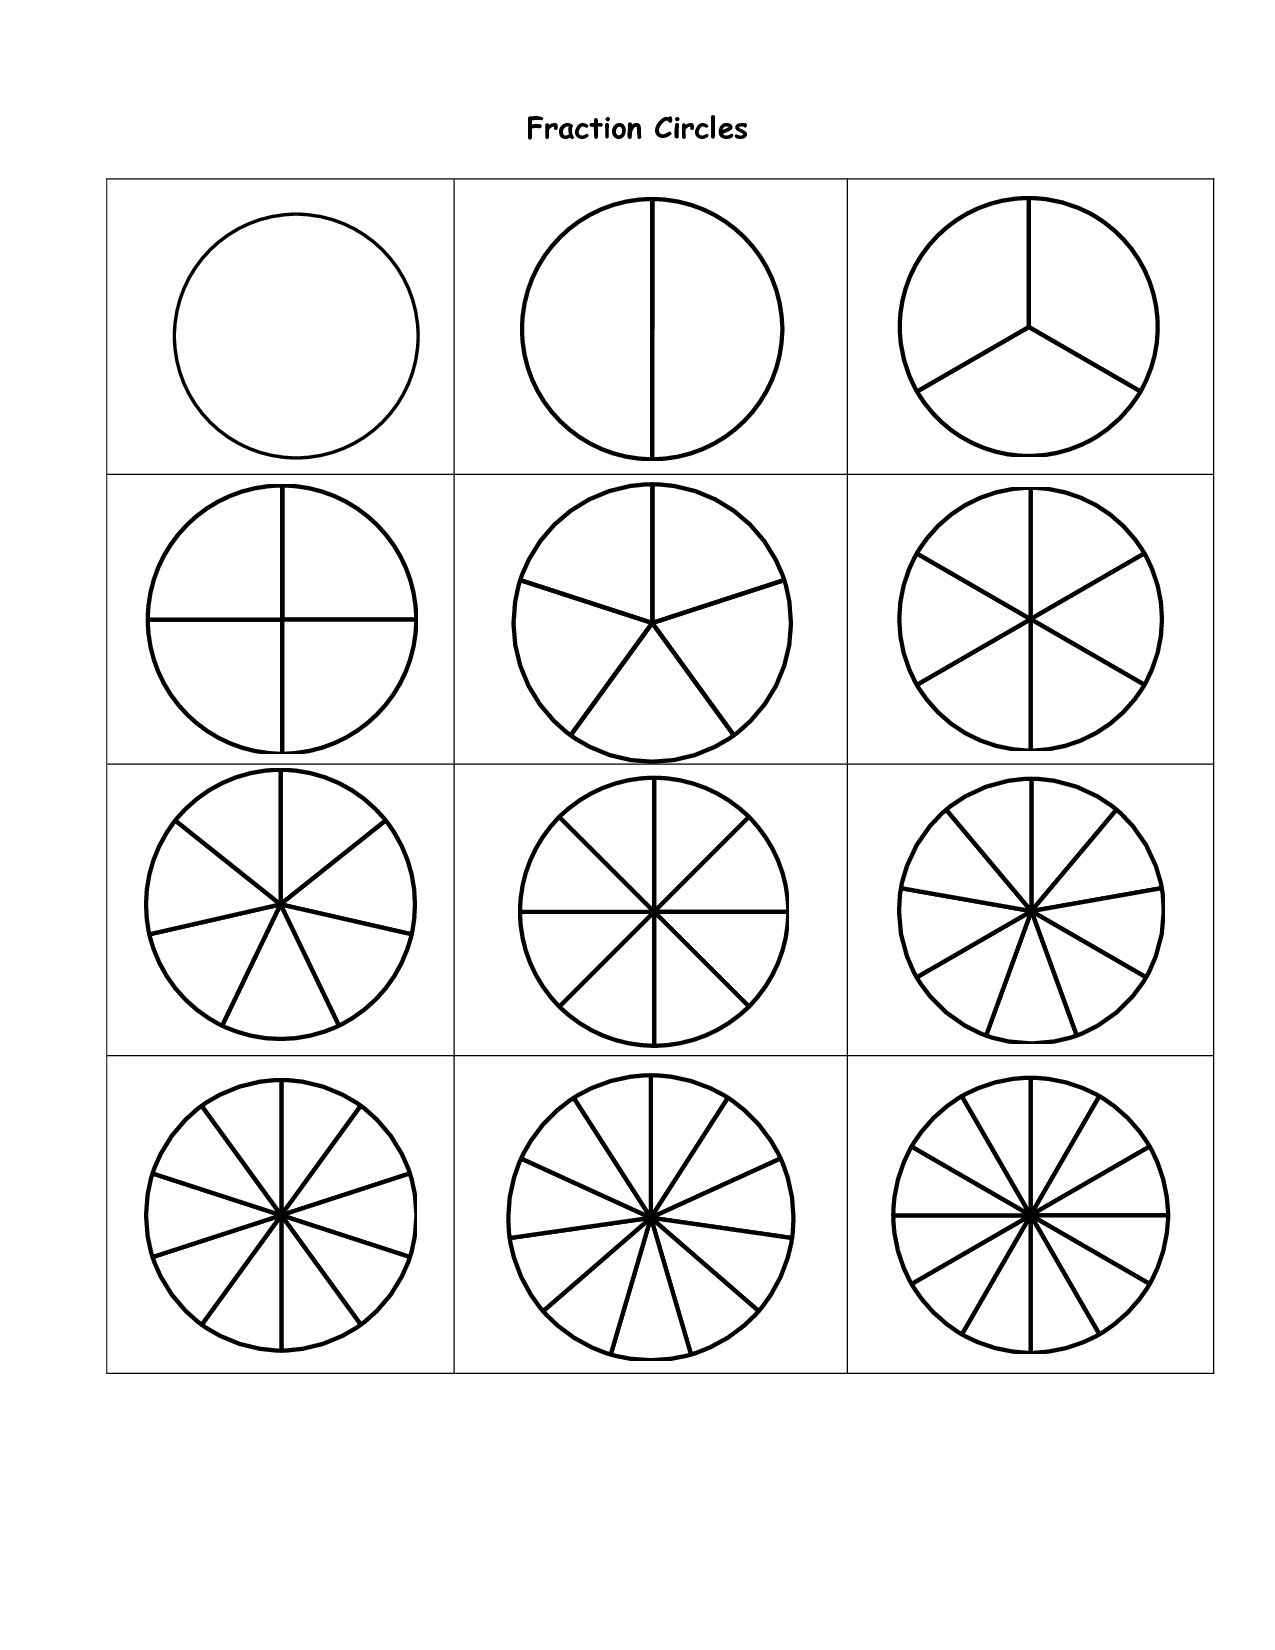 Fraction Pieces Template_jwcdRN7fDsmwv4k8sNR6k5uX0KJYQcdVpSEeIx228Fg on Circle Fraction Pieces